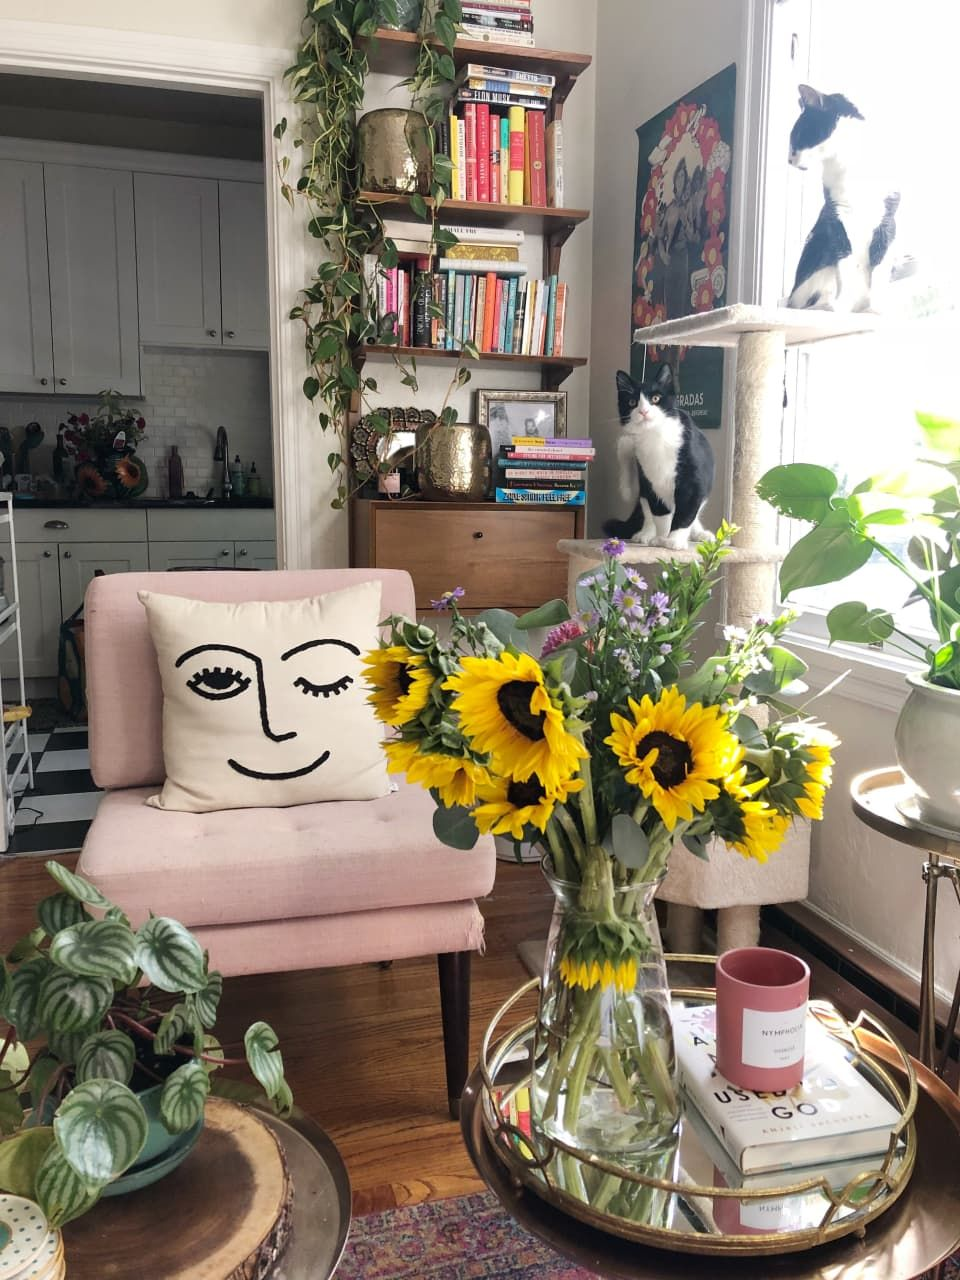 A 370-Square-Foot Studio Is Uncluttered Yet Cozy